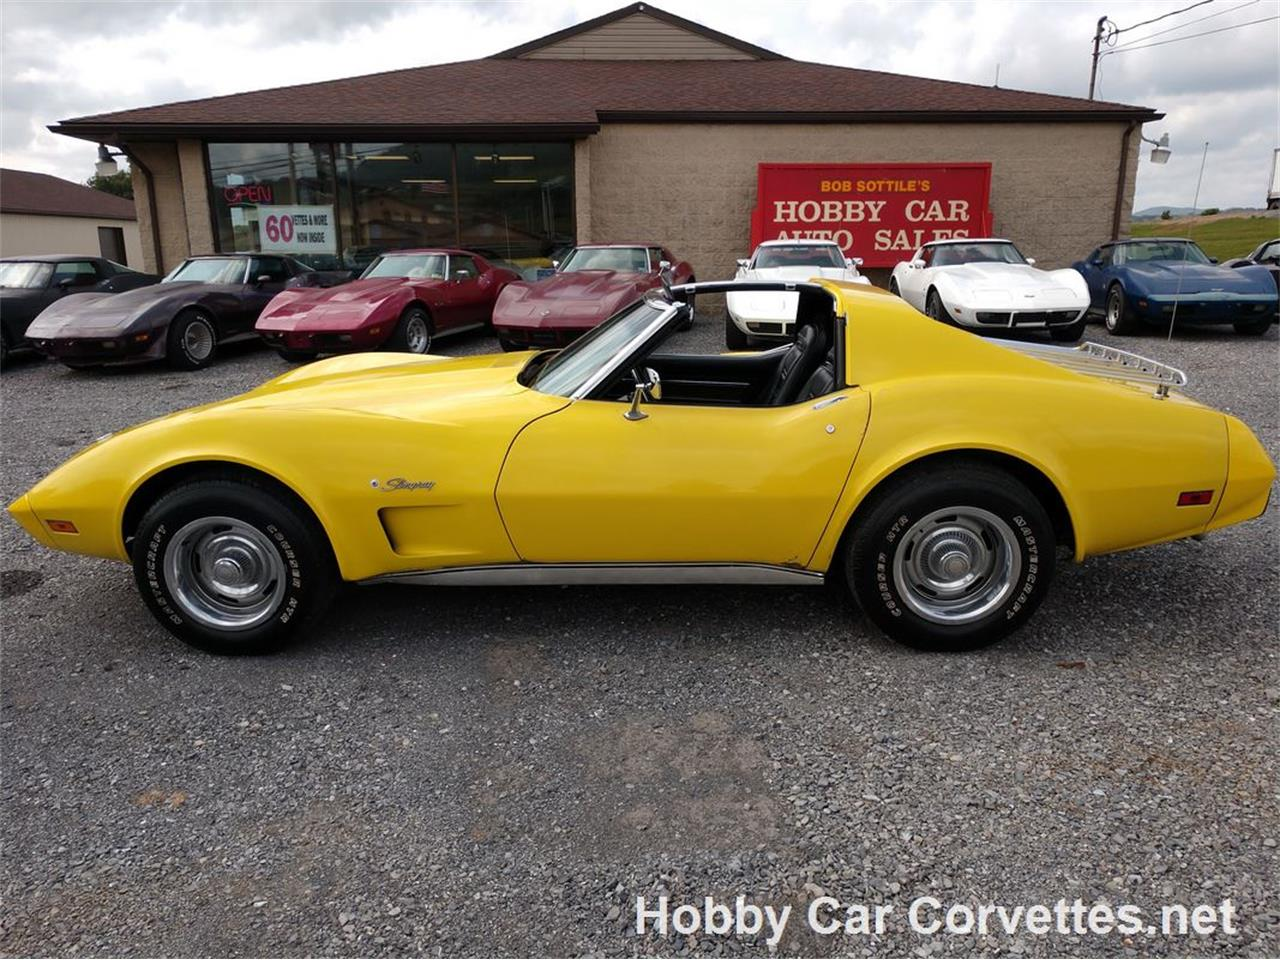 Large Picture of 1975 Chevrolet Corvette located in Pennsylvania Offered by Hobby Car Corvettes - LRQK